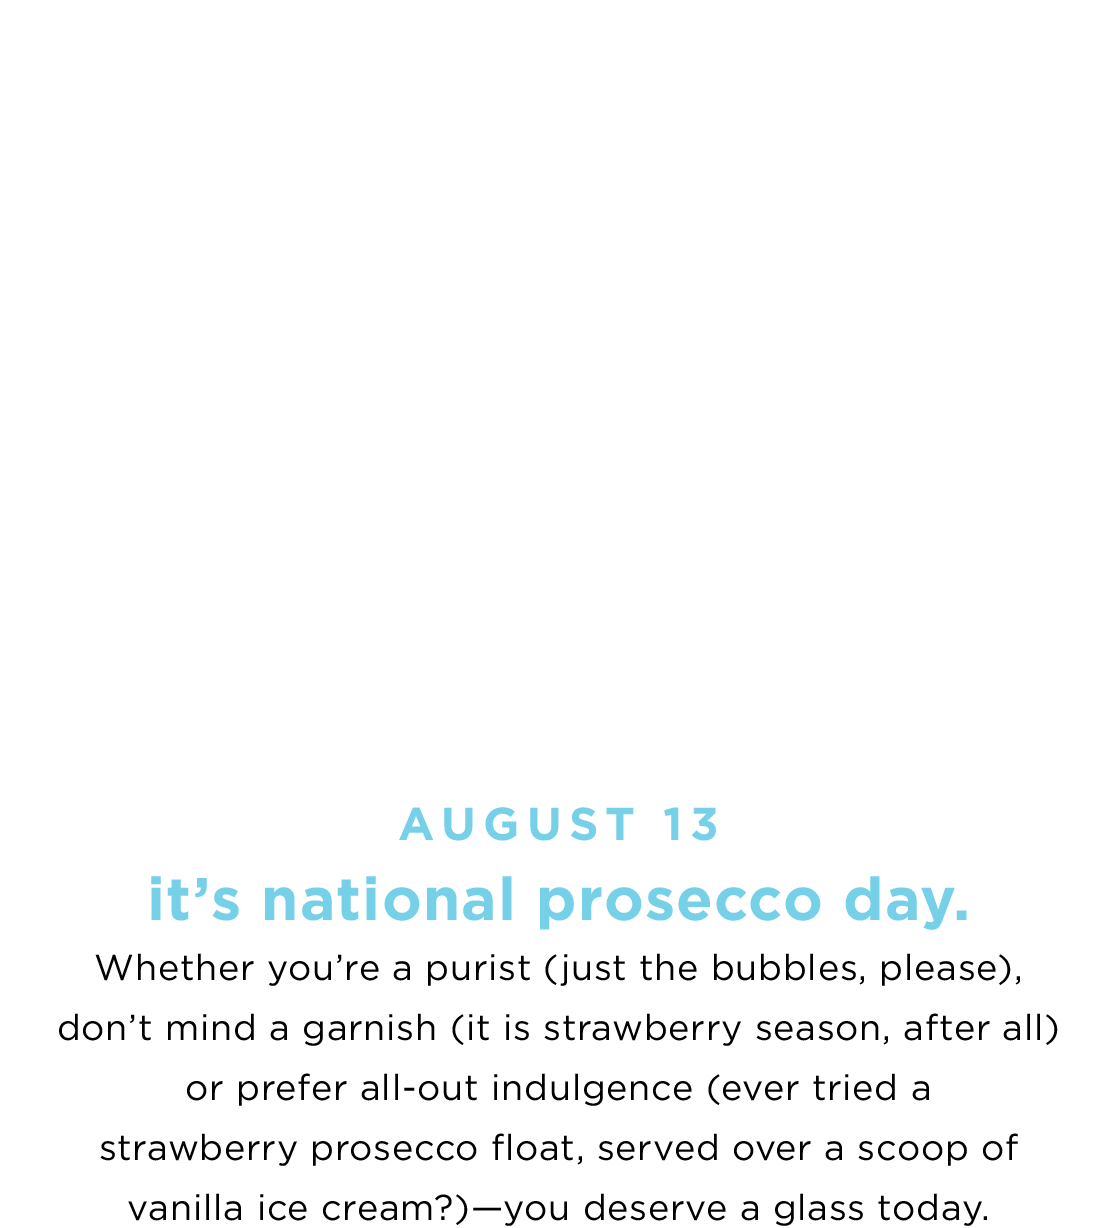 AUGUST 13 - It's national prosecco day.